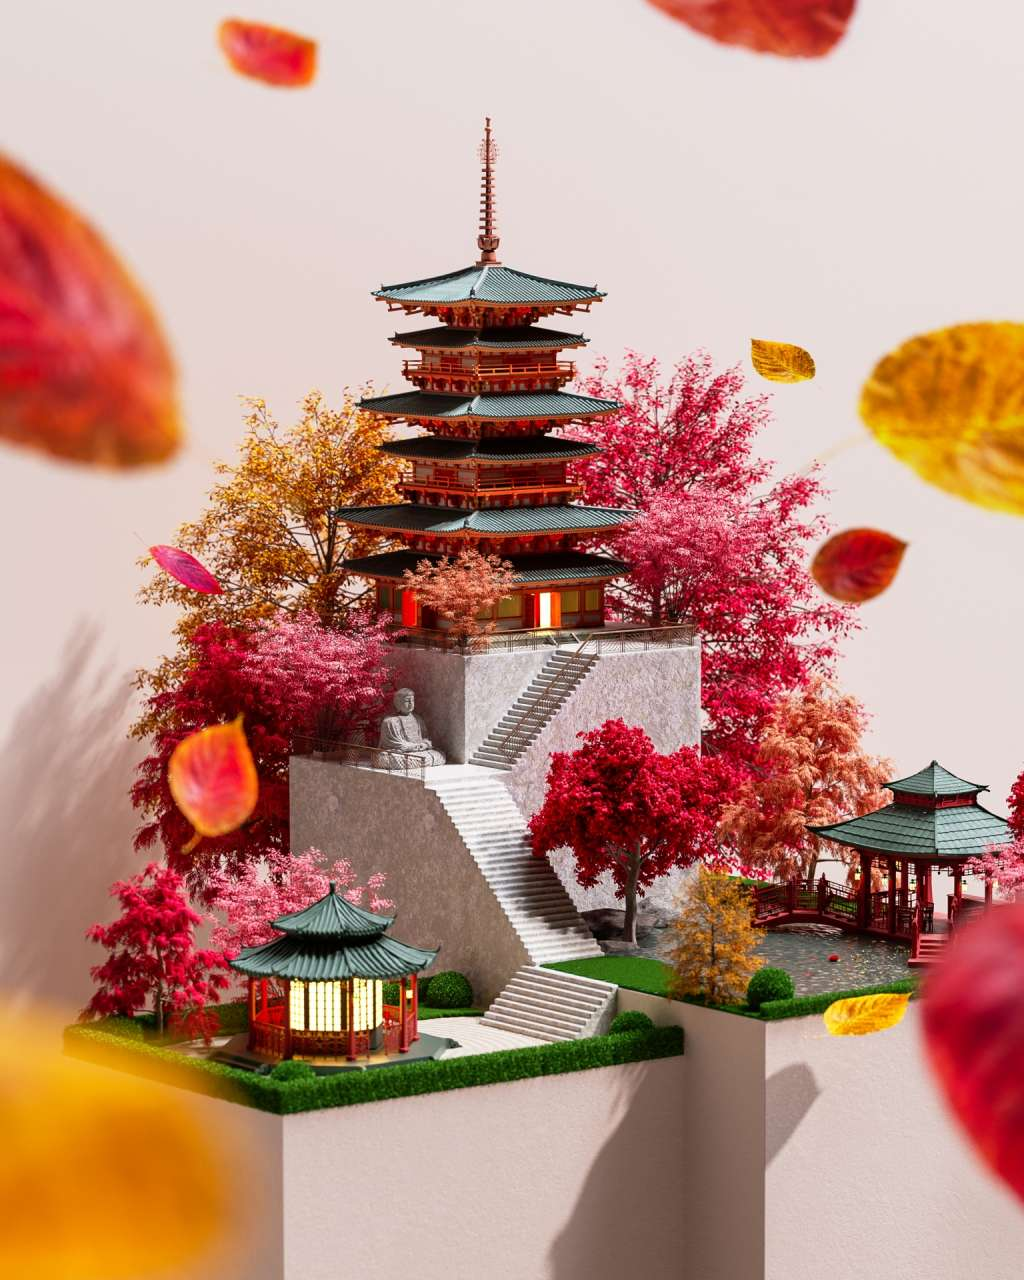 escapes_3dart_cgi_japanesegarden_ben_fearnley.jpg